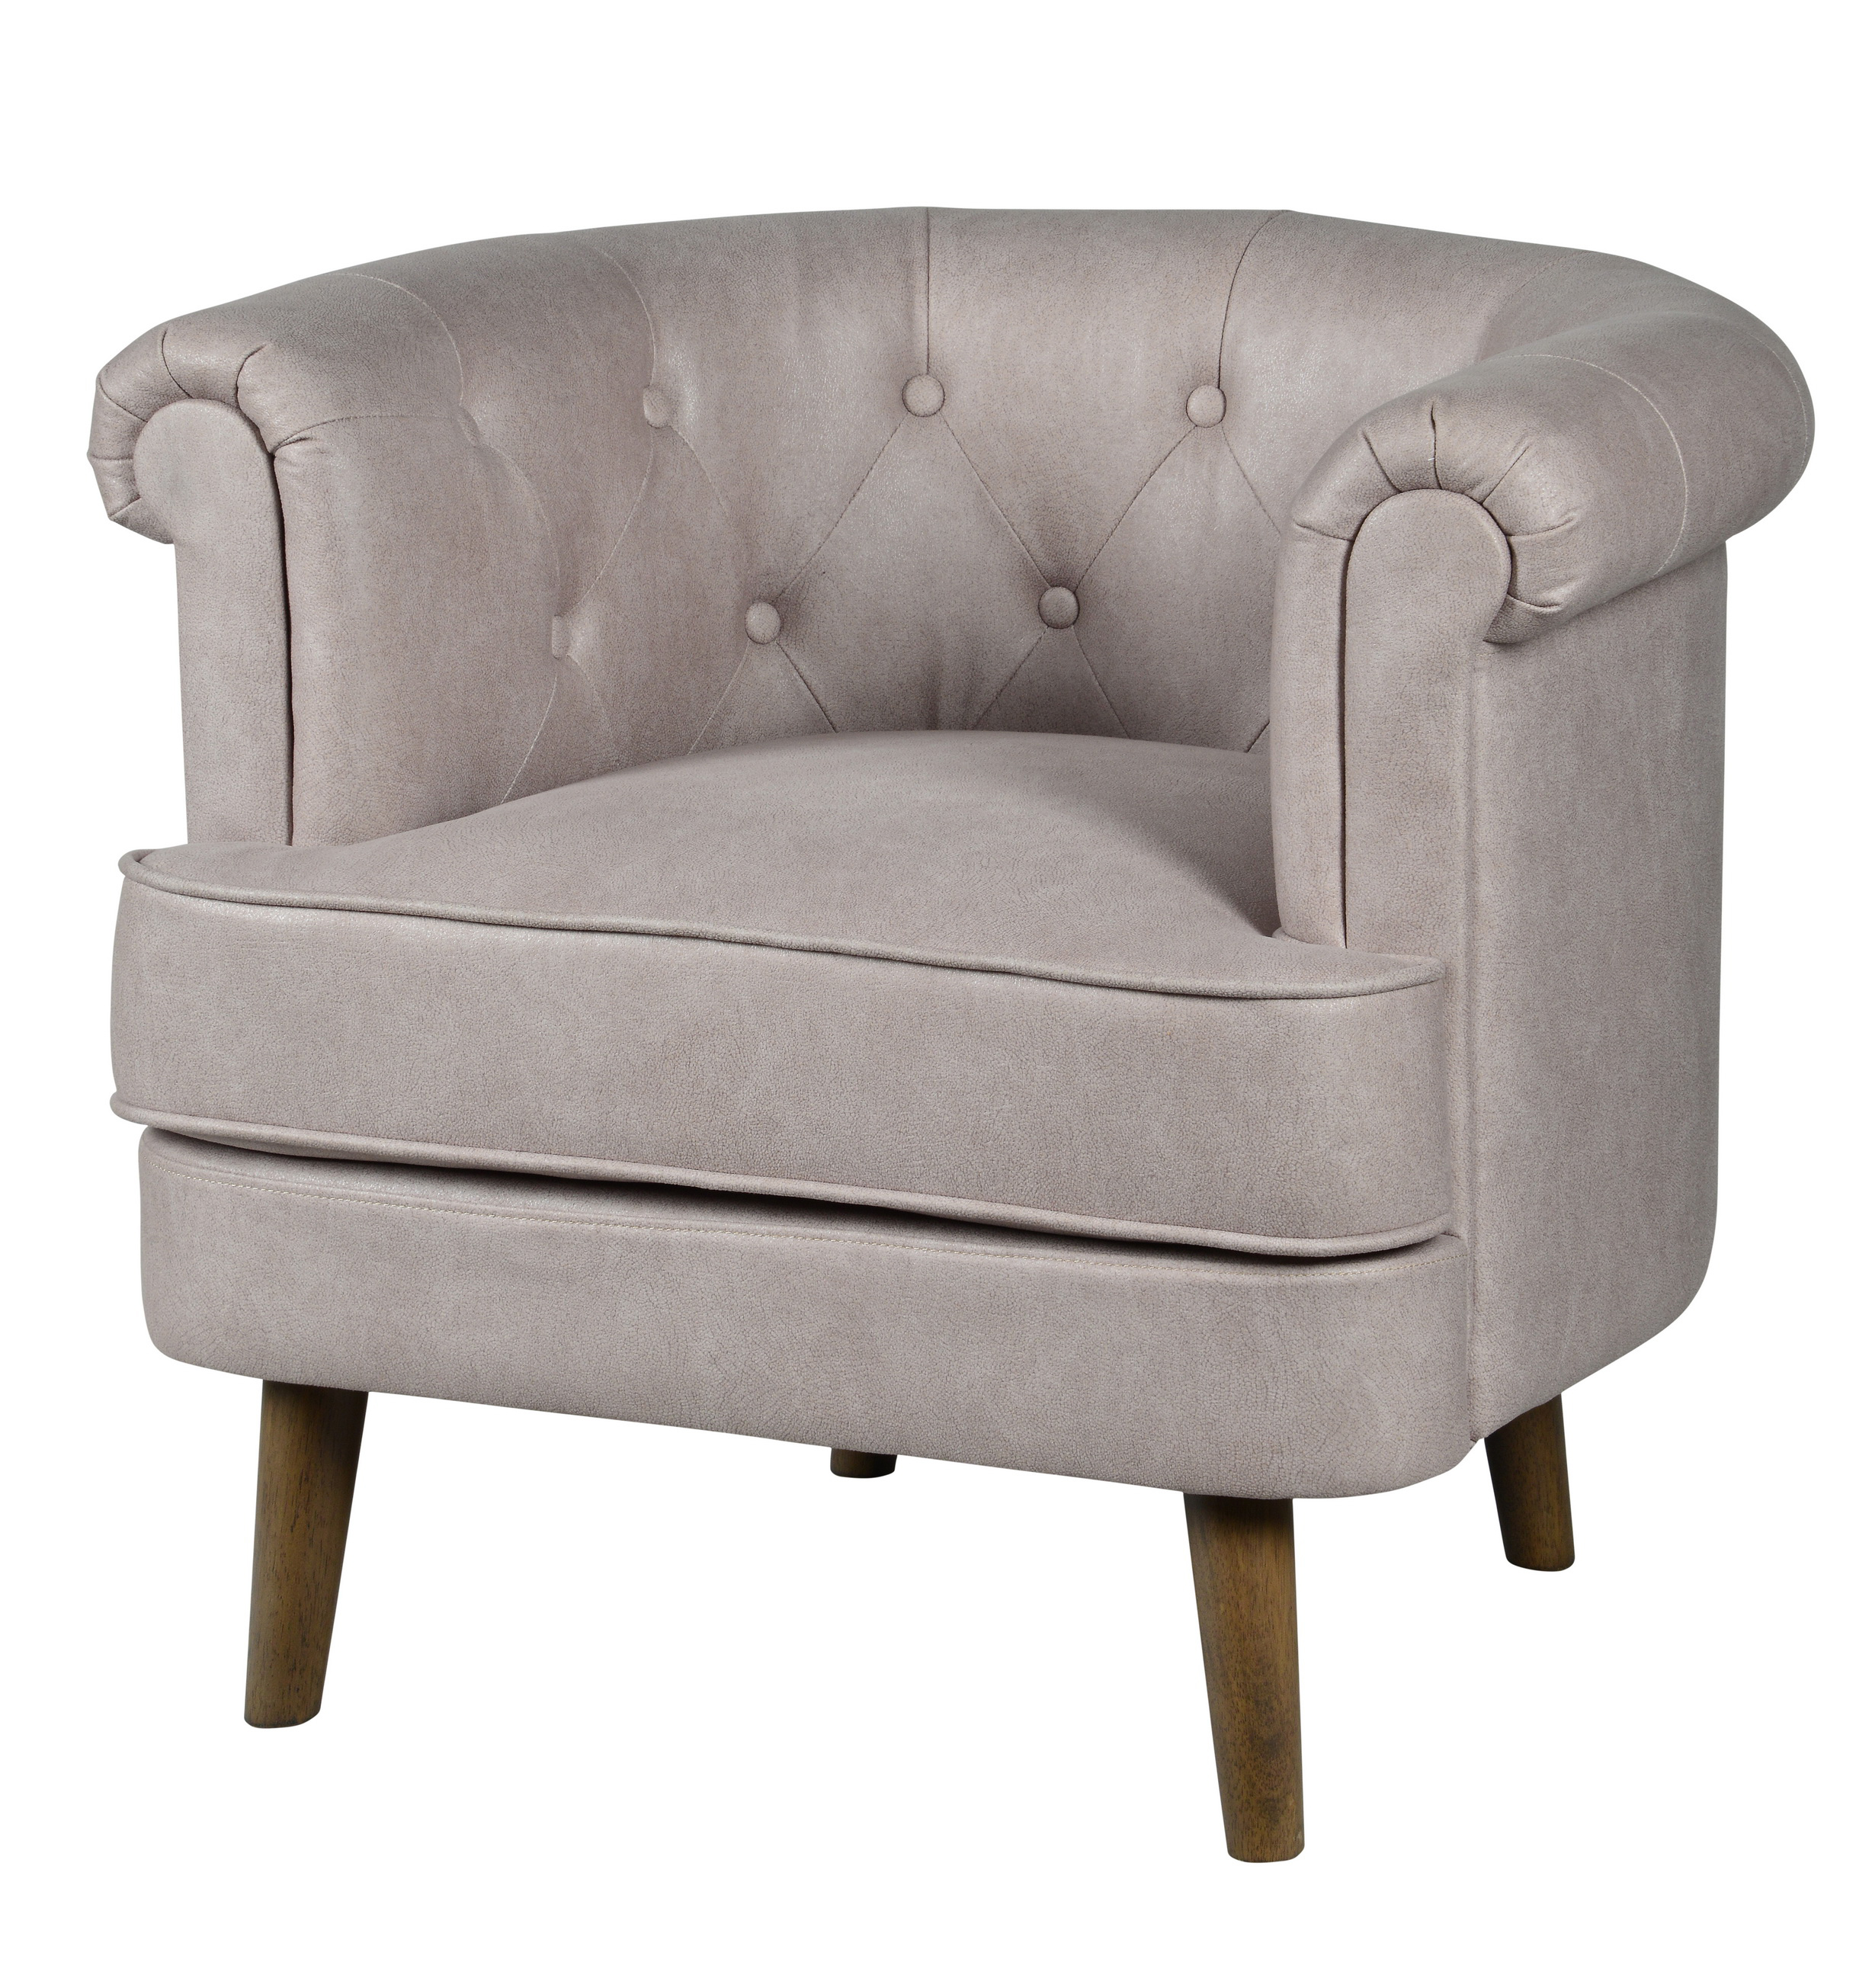 Forty West Meghan tufted chair